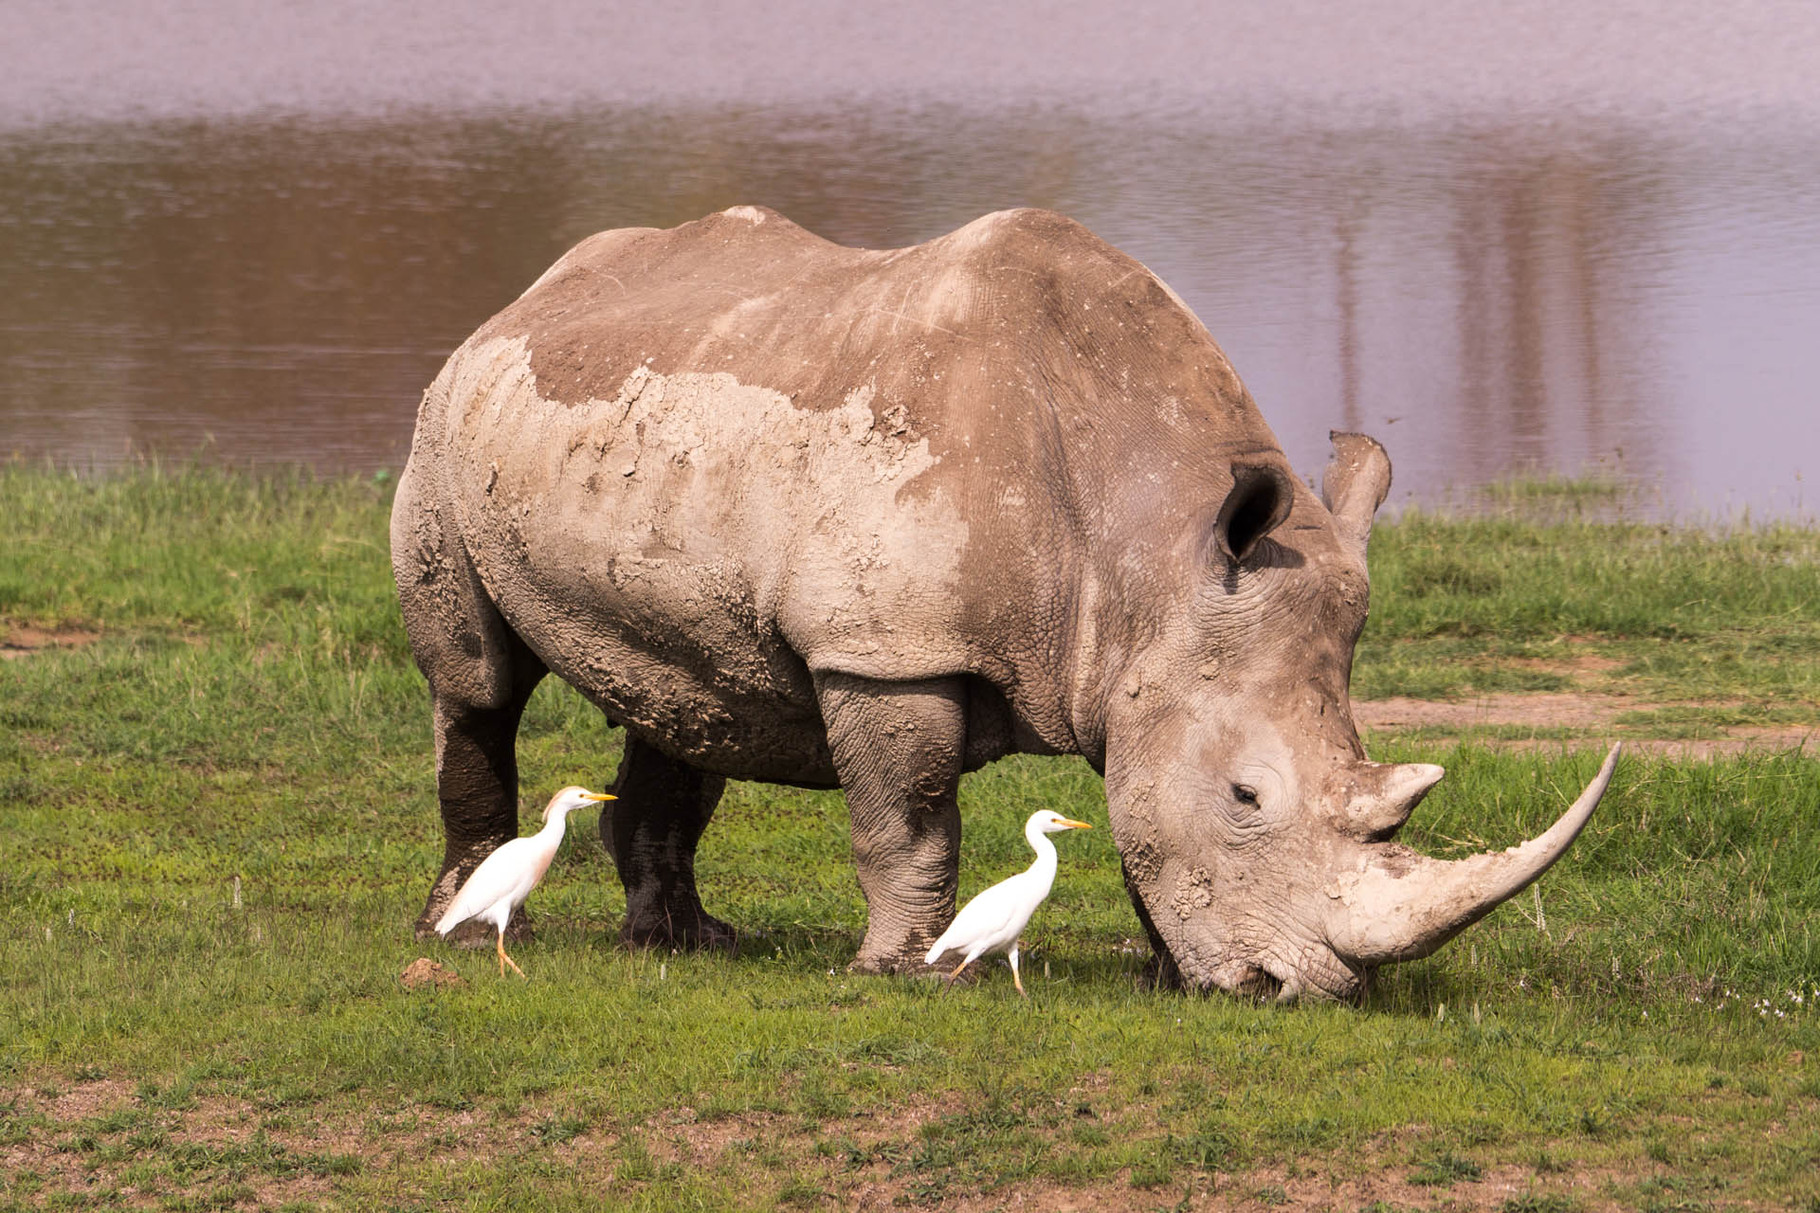 White rhino and egrets, Nakuru National park, Kenya